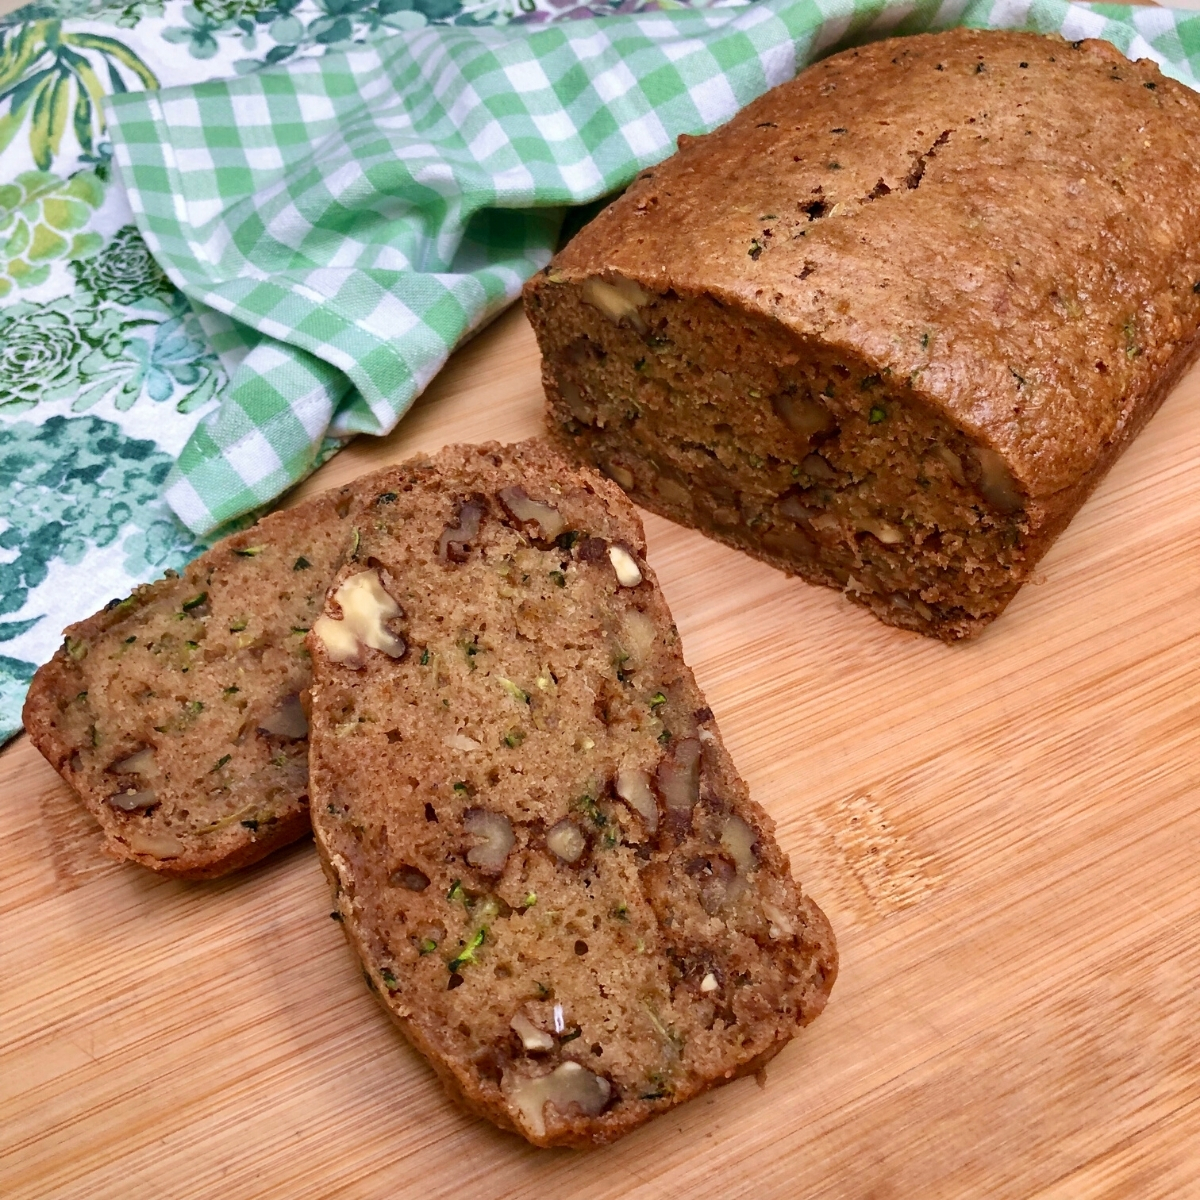 Slices of simple vegan zucchini bread with walnuts on a bamboo board and tea towel.